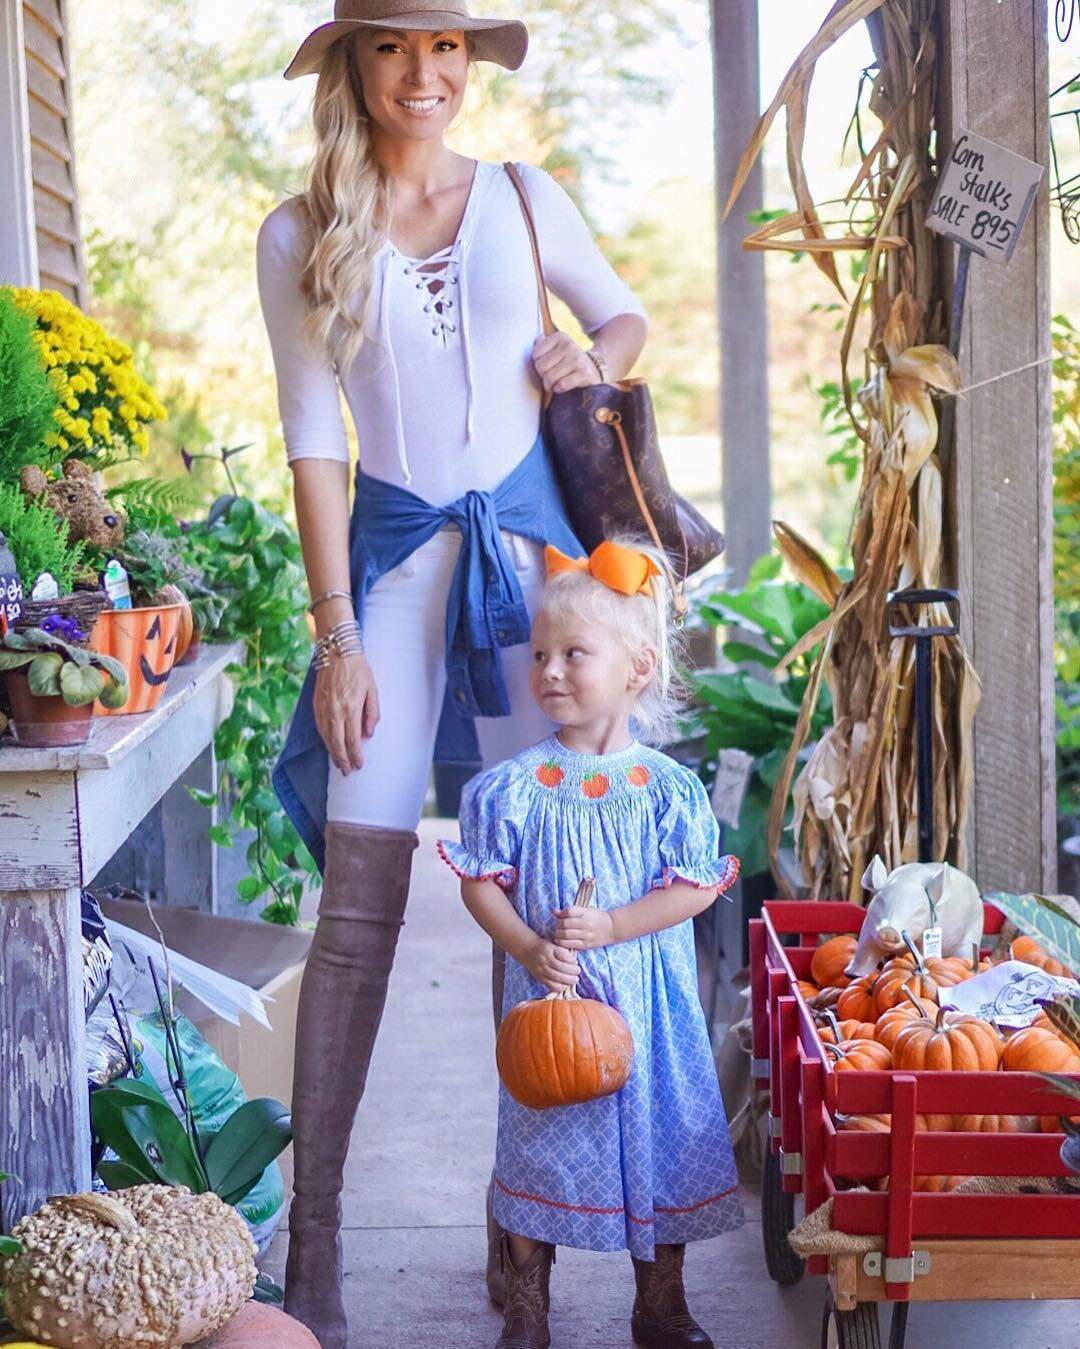 Squeezed in one last pumpkin patch run with this cutie! Can't wait to take this chick trick-or-treating!! http://liketk.it/2puD9 #fall #fallfashion #momlife #lifewithblove #wiw #ootd #halloween #liketkit